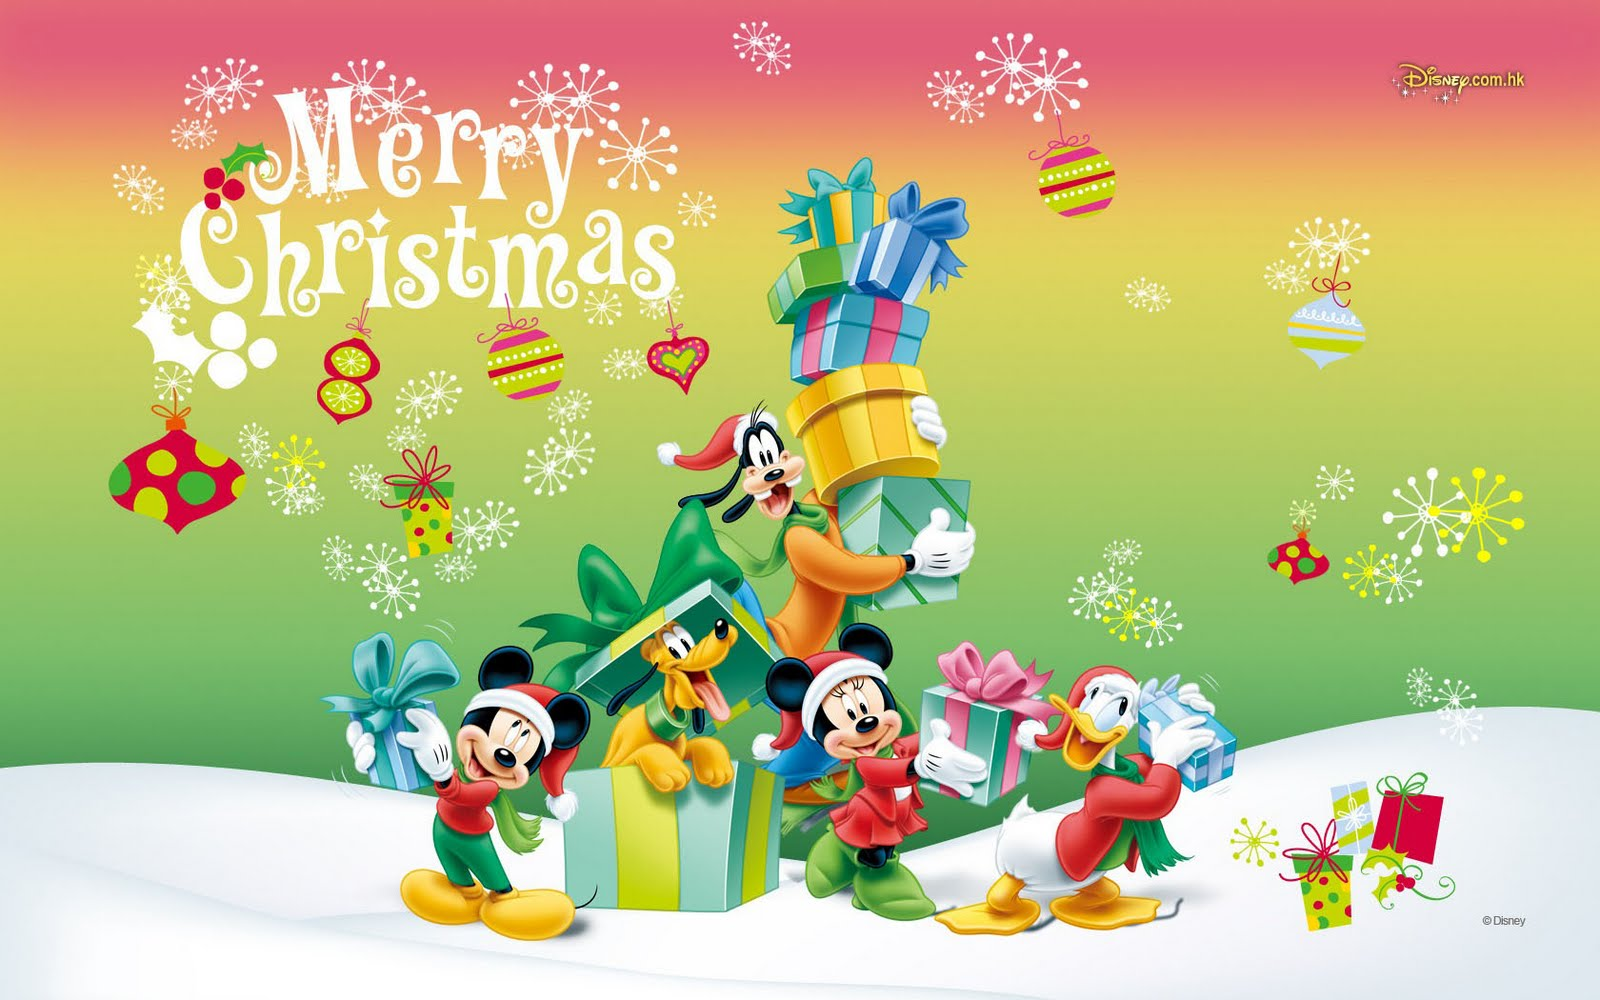 Collection of Disney Christmas Desktop Wallpaper on HDWallpapers